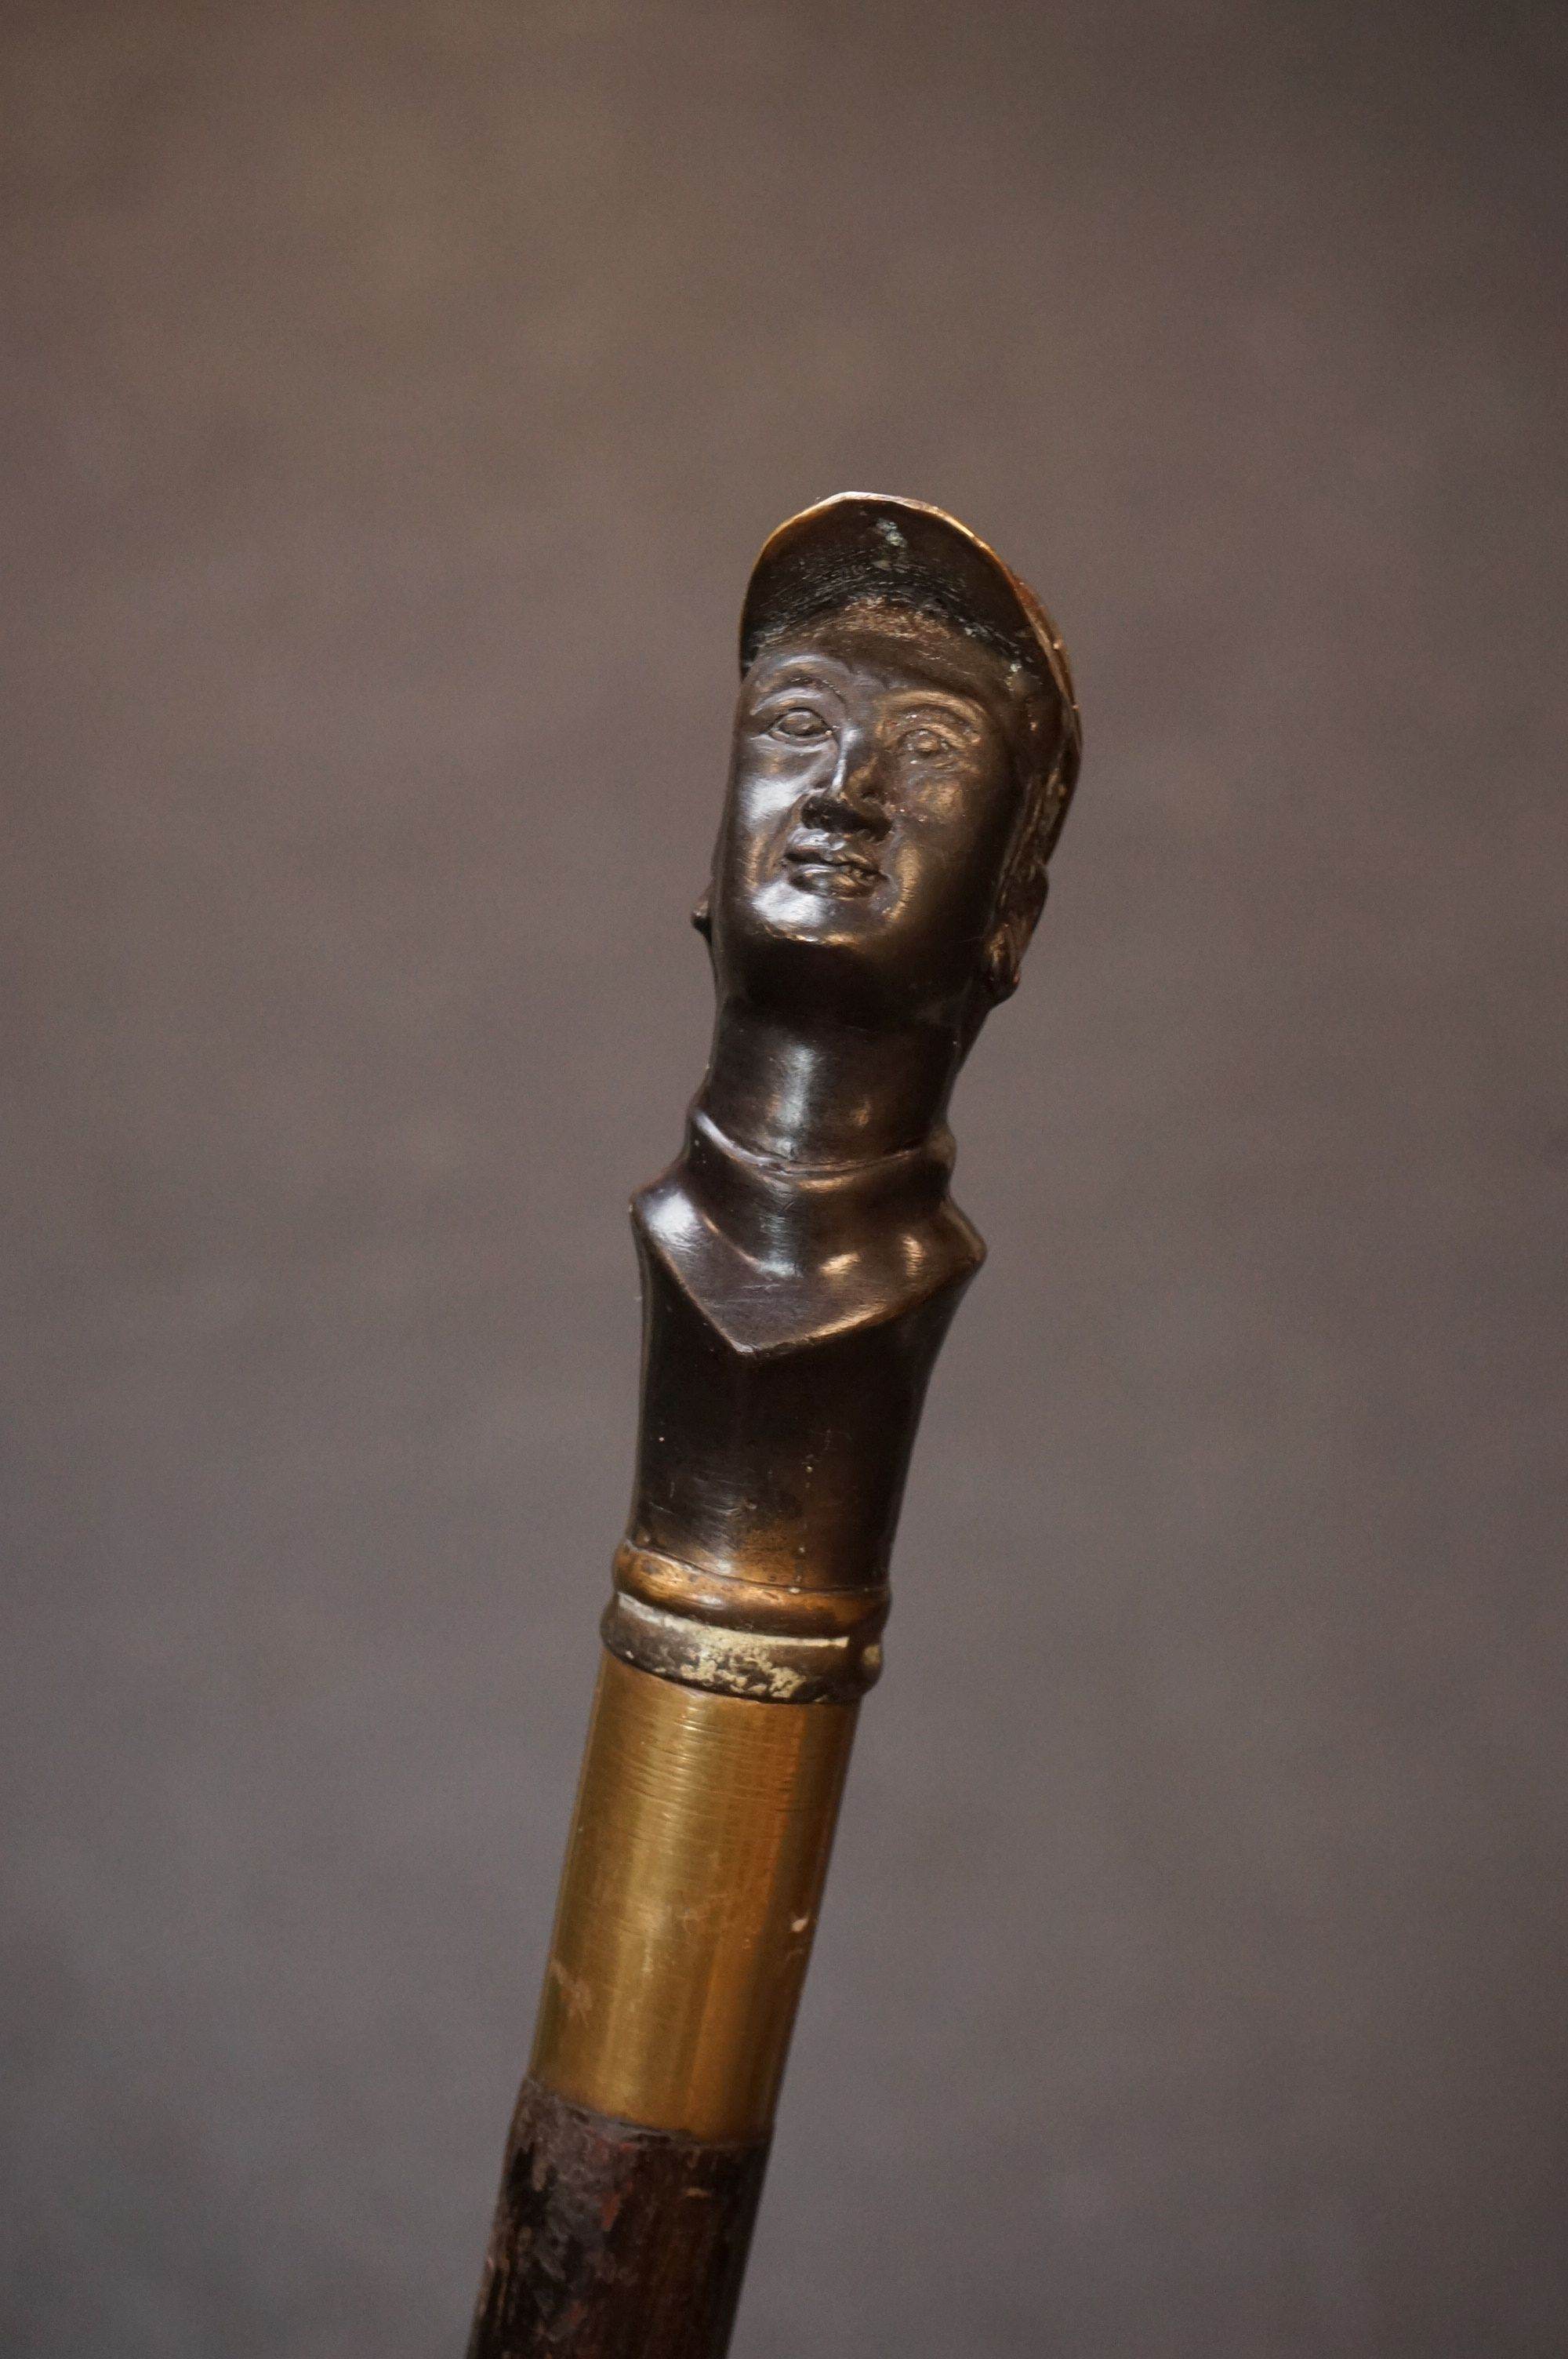 A wooden walking stick with bronzed mounted head of a jockey to the finial, possibly Fred Archer. - Image 2 of 7